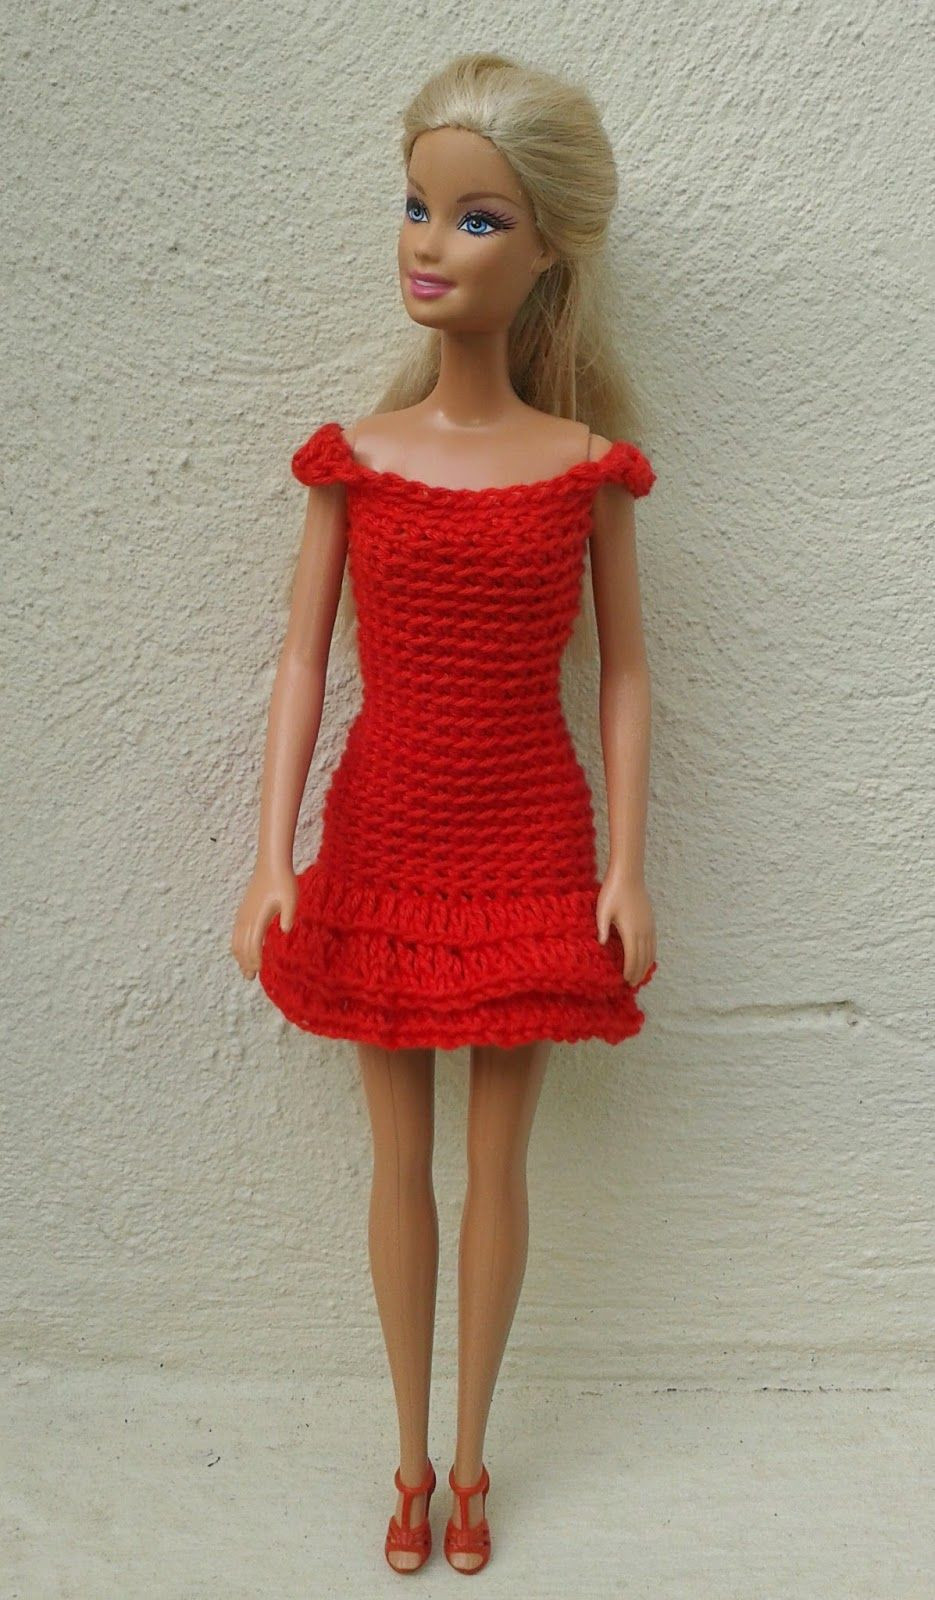 Best Of Lyn S Dolls Clothes Barbie In Red Crochet Dresses Barbie Doll Clothes Patterns Of Contemporary 50 Pictures Barbie Doll Clothes Patterns